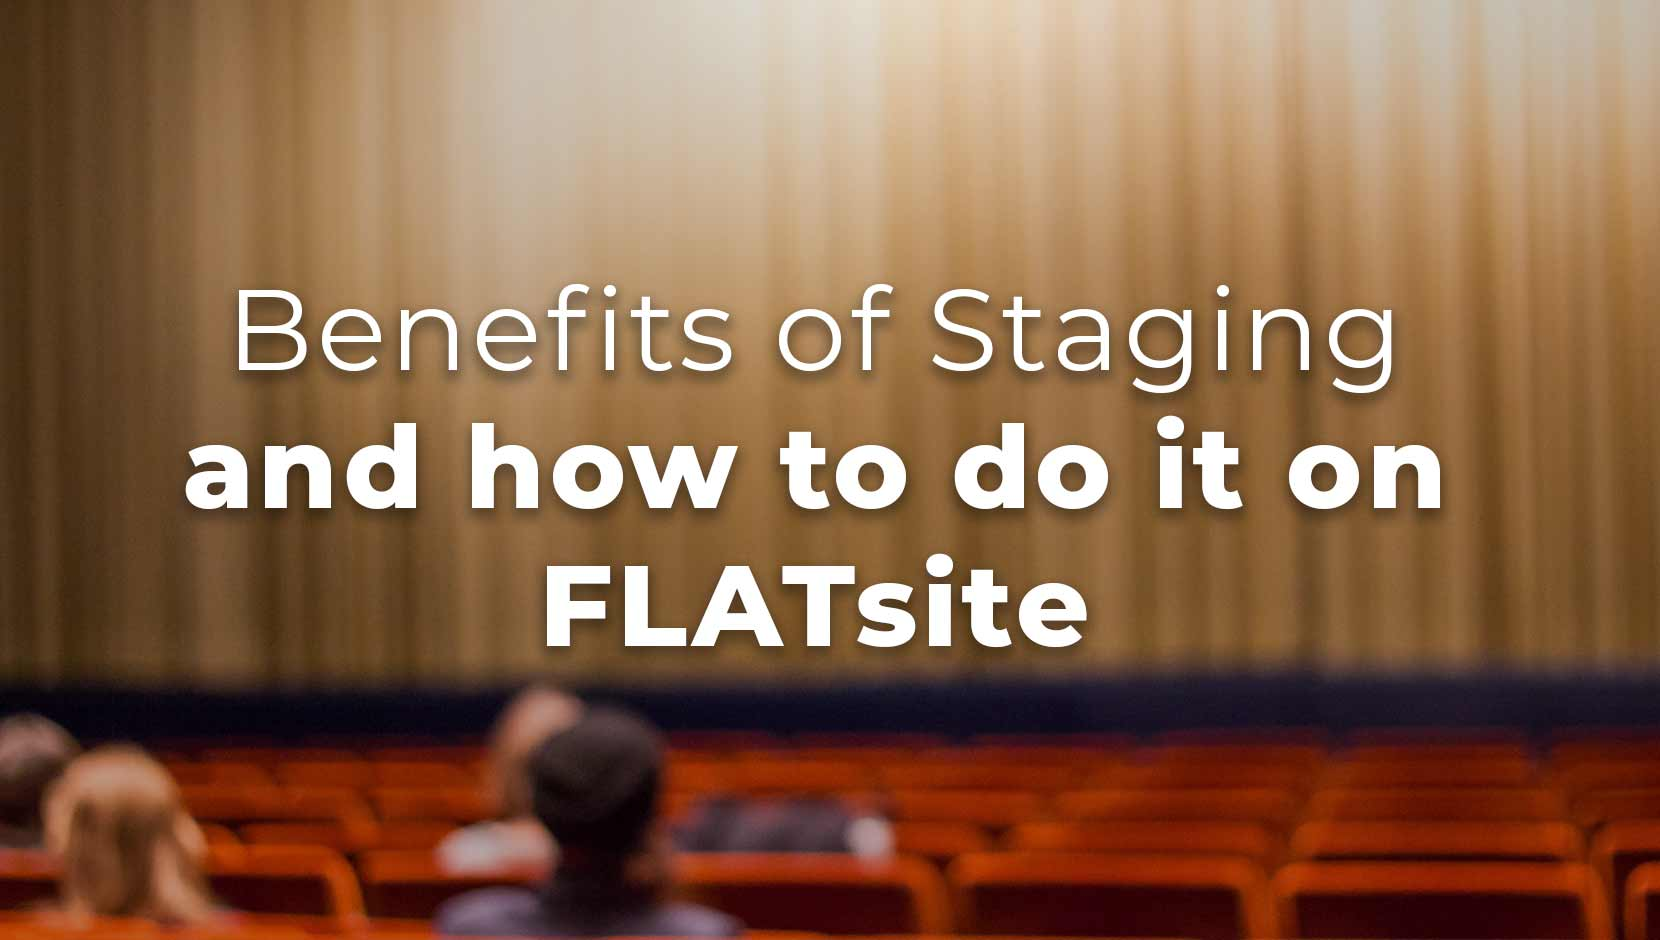 6 Benefits of Staging and How to Do it on FLATsite